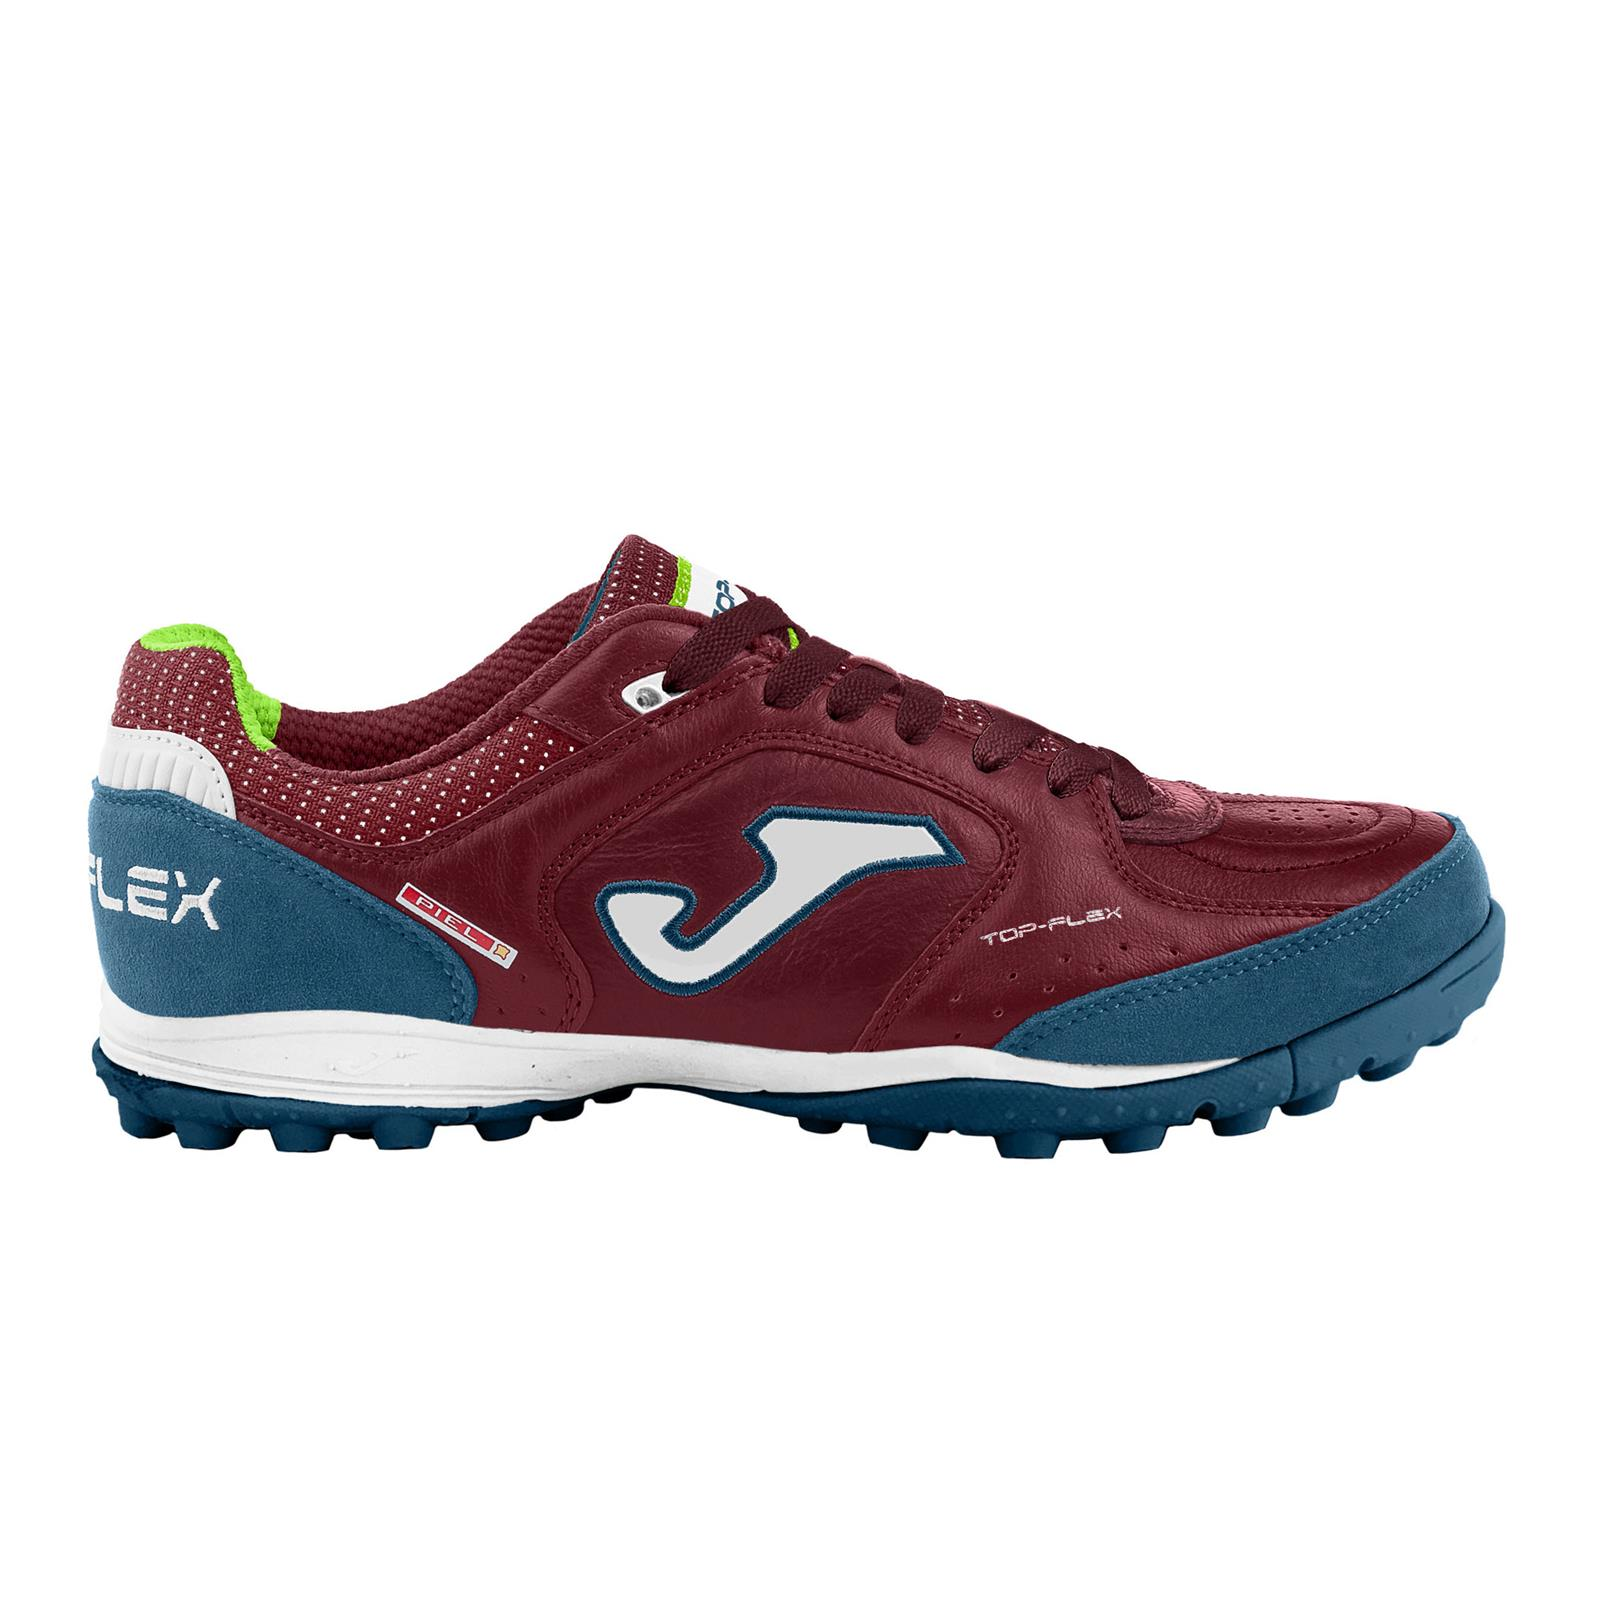 JOMA Scarpa calcio a 5 Top Flex 2020 Turf (44 - BORDEAUX - MARINO)